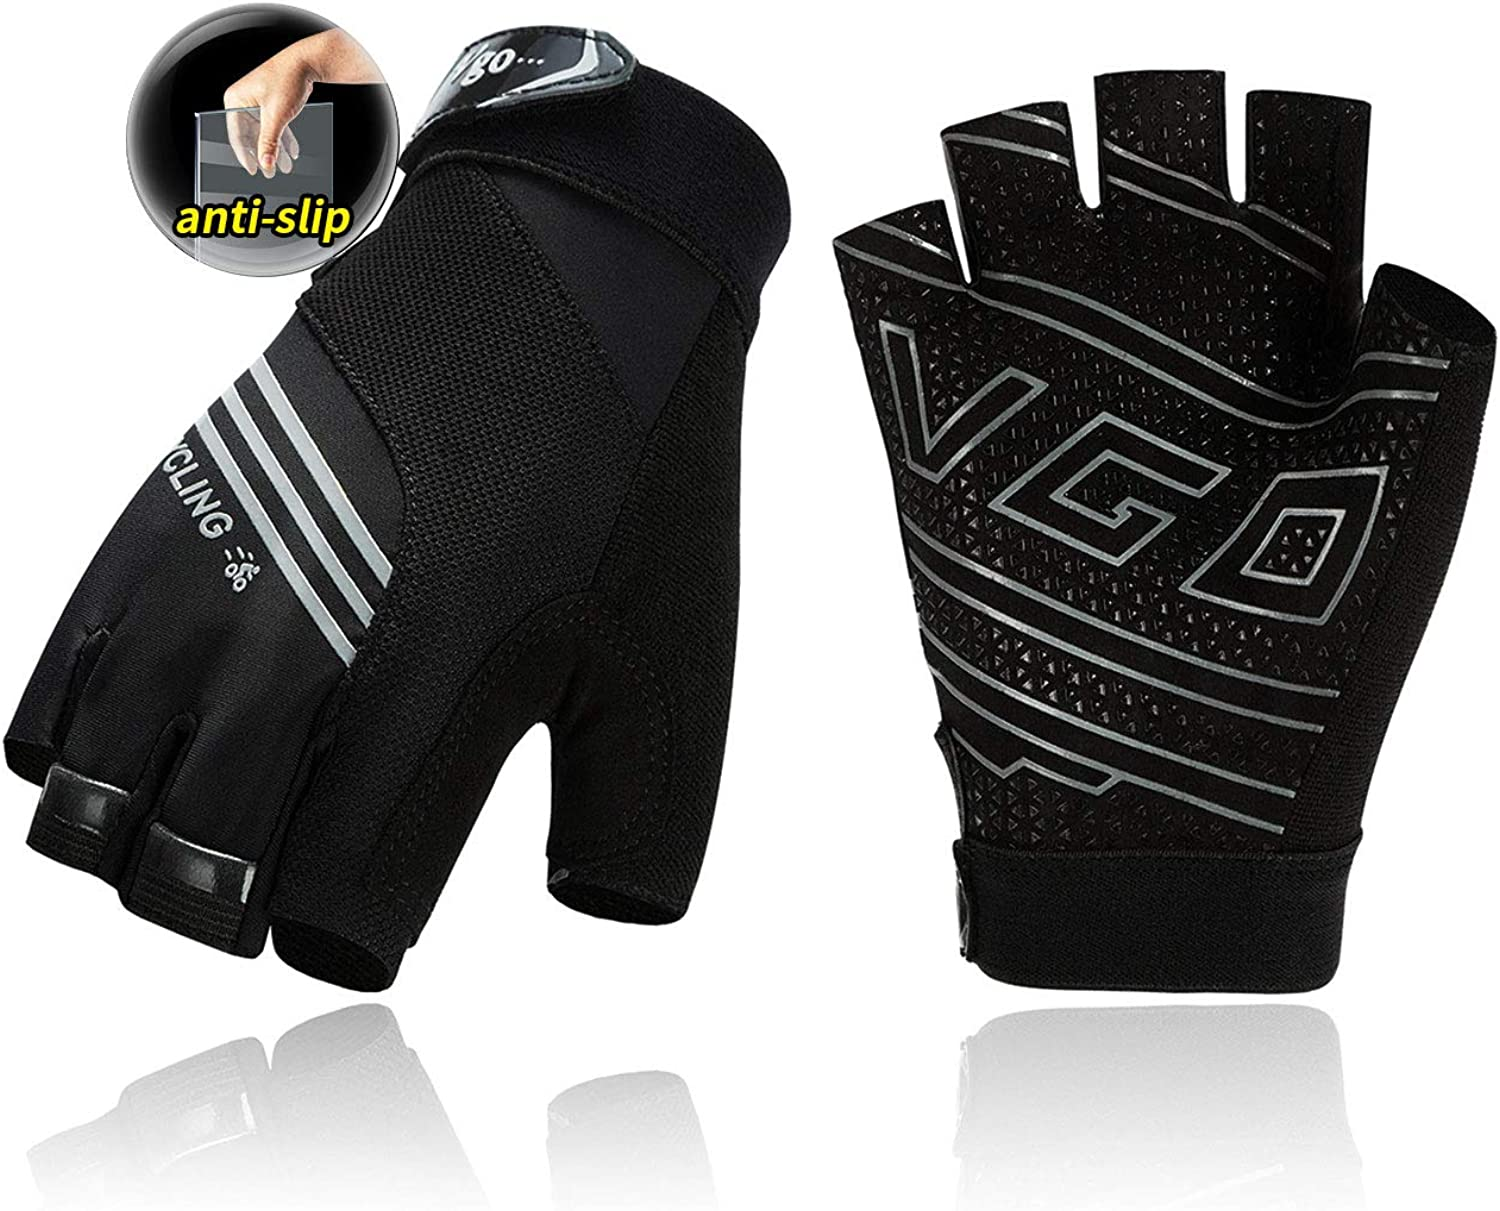 Vgo... 1-Pair Microfiber Half Finger Cycling Gloves, Hiking, Gym, Biking Gloves, High Dexterity, Breathable, Anti-Slip (Gray, Red & Yellow, MF2510)